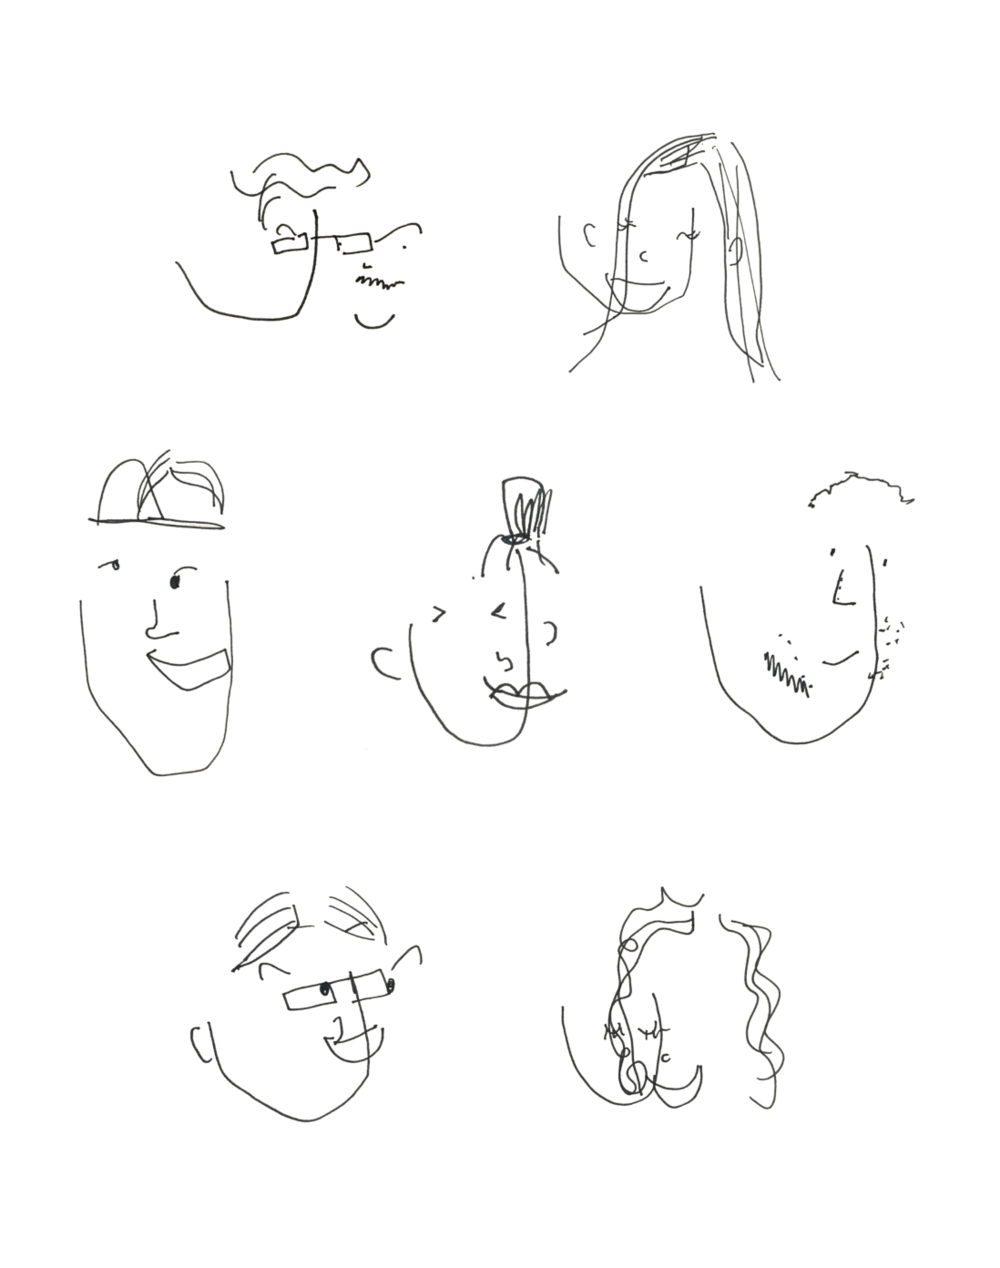 A drawing of my friends with my eyes closed.